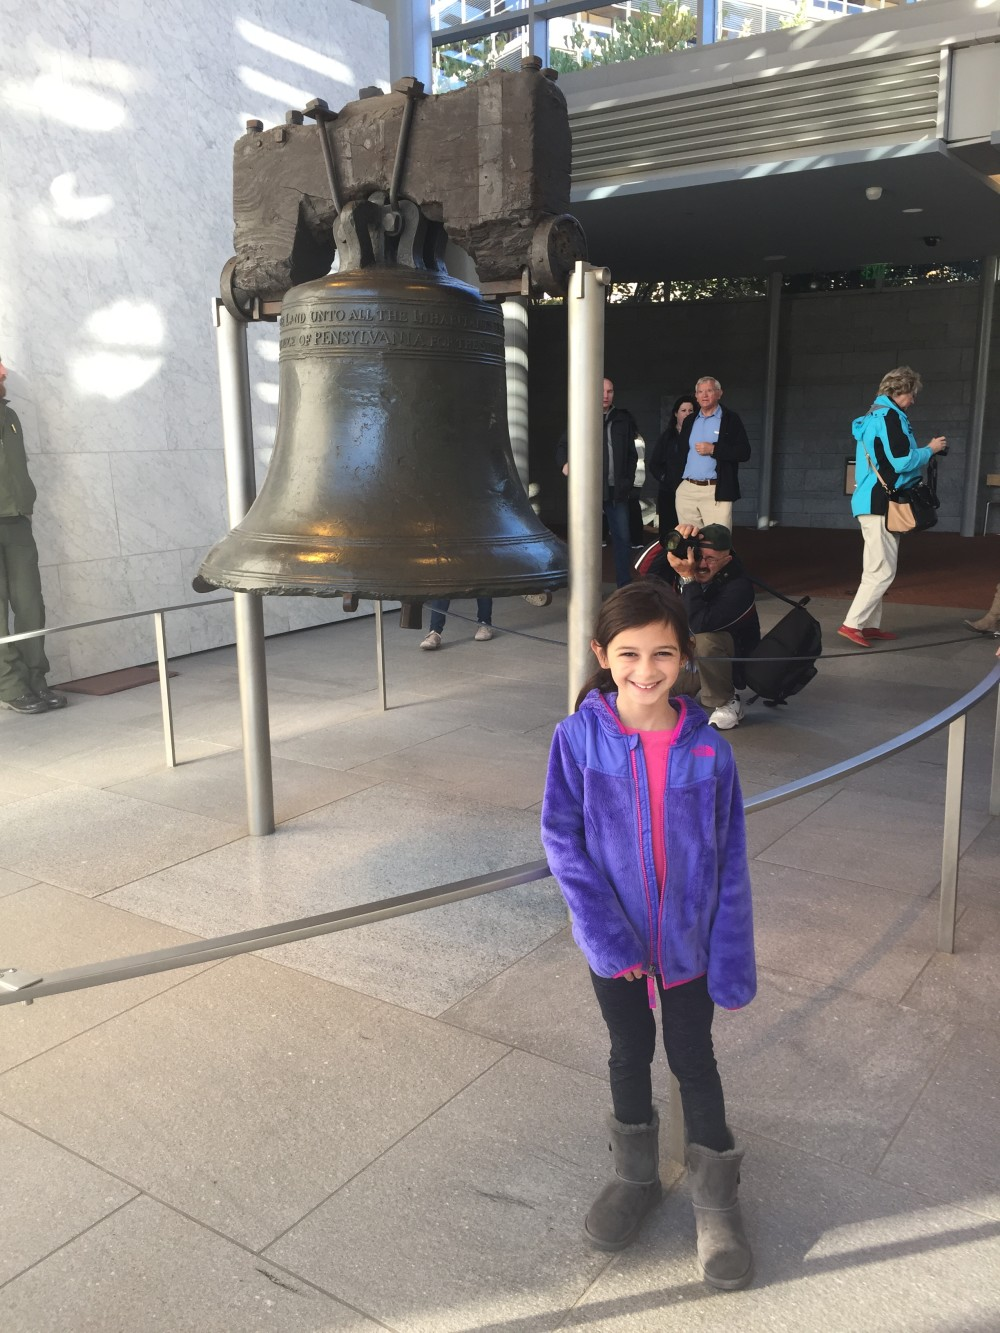 Rachel and the Liberty Bell